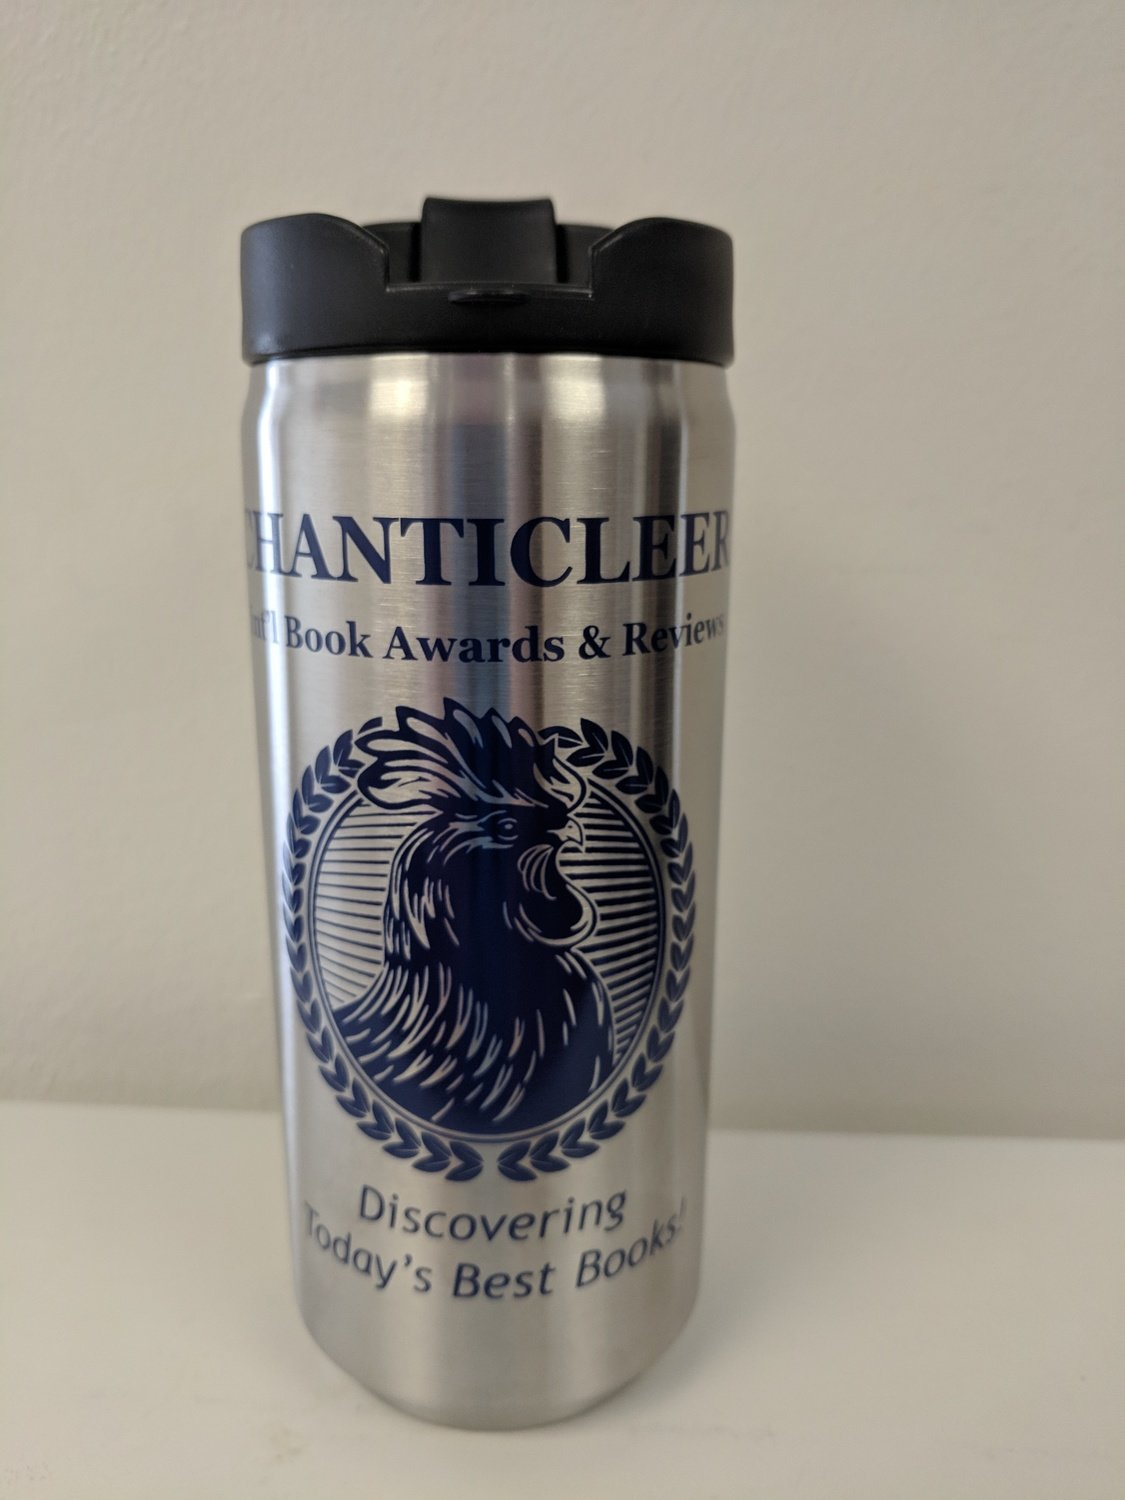 Chanticleer Merchandise